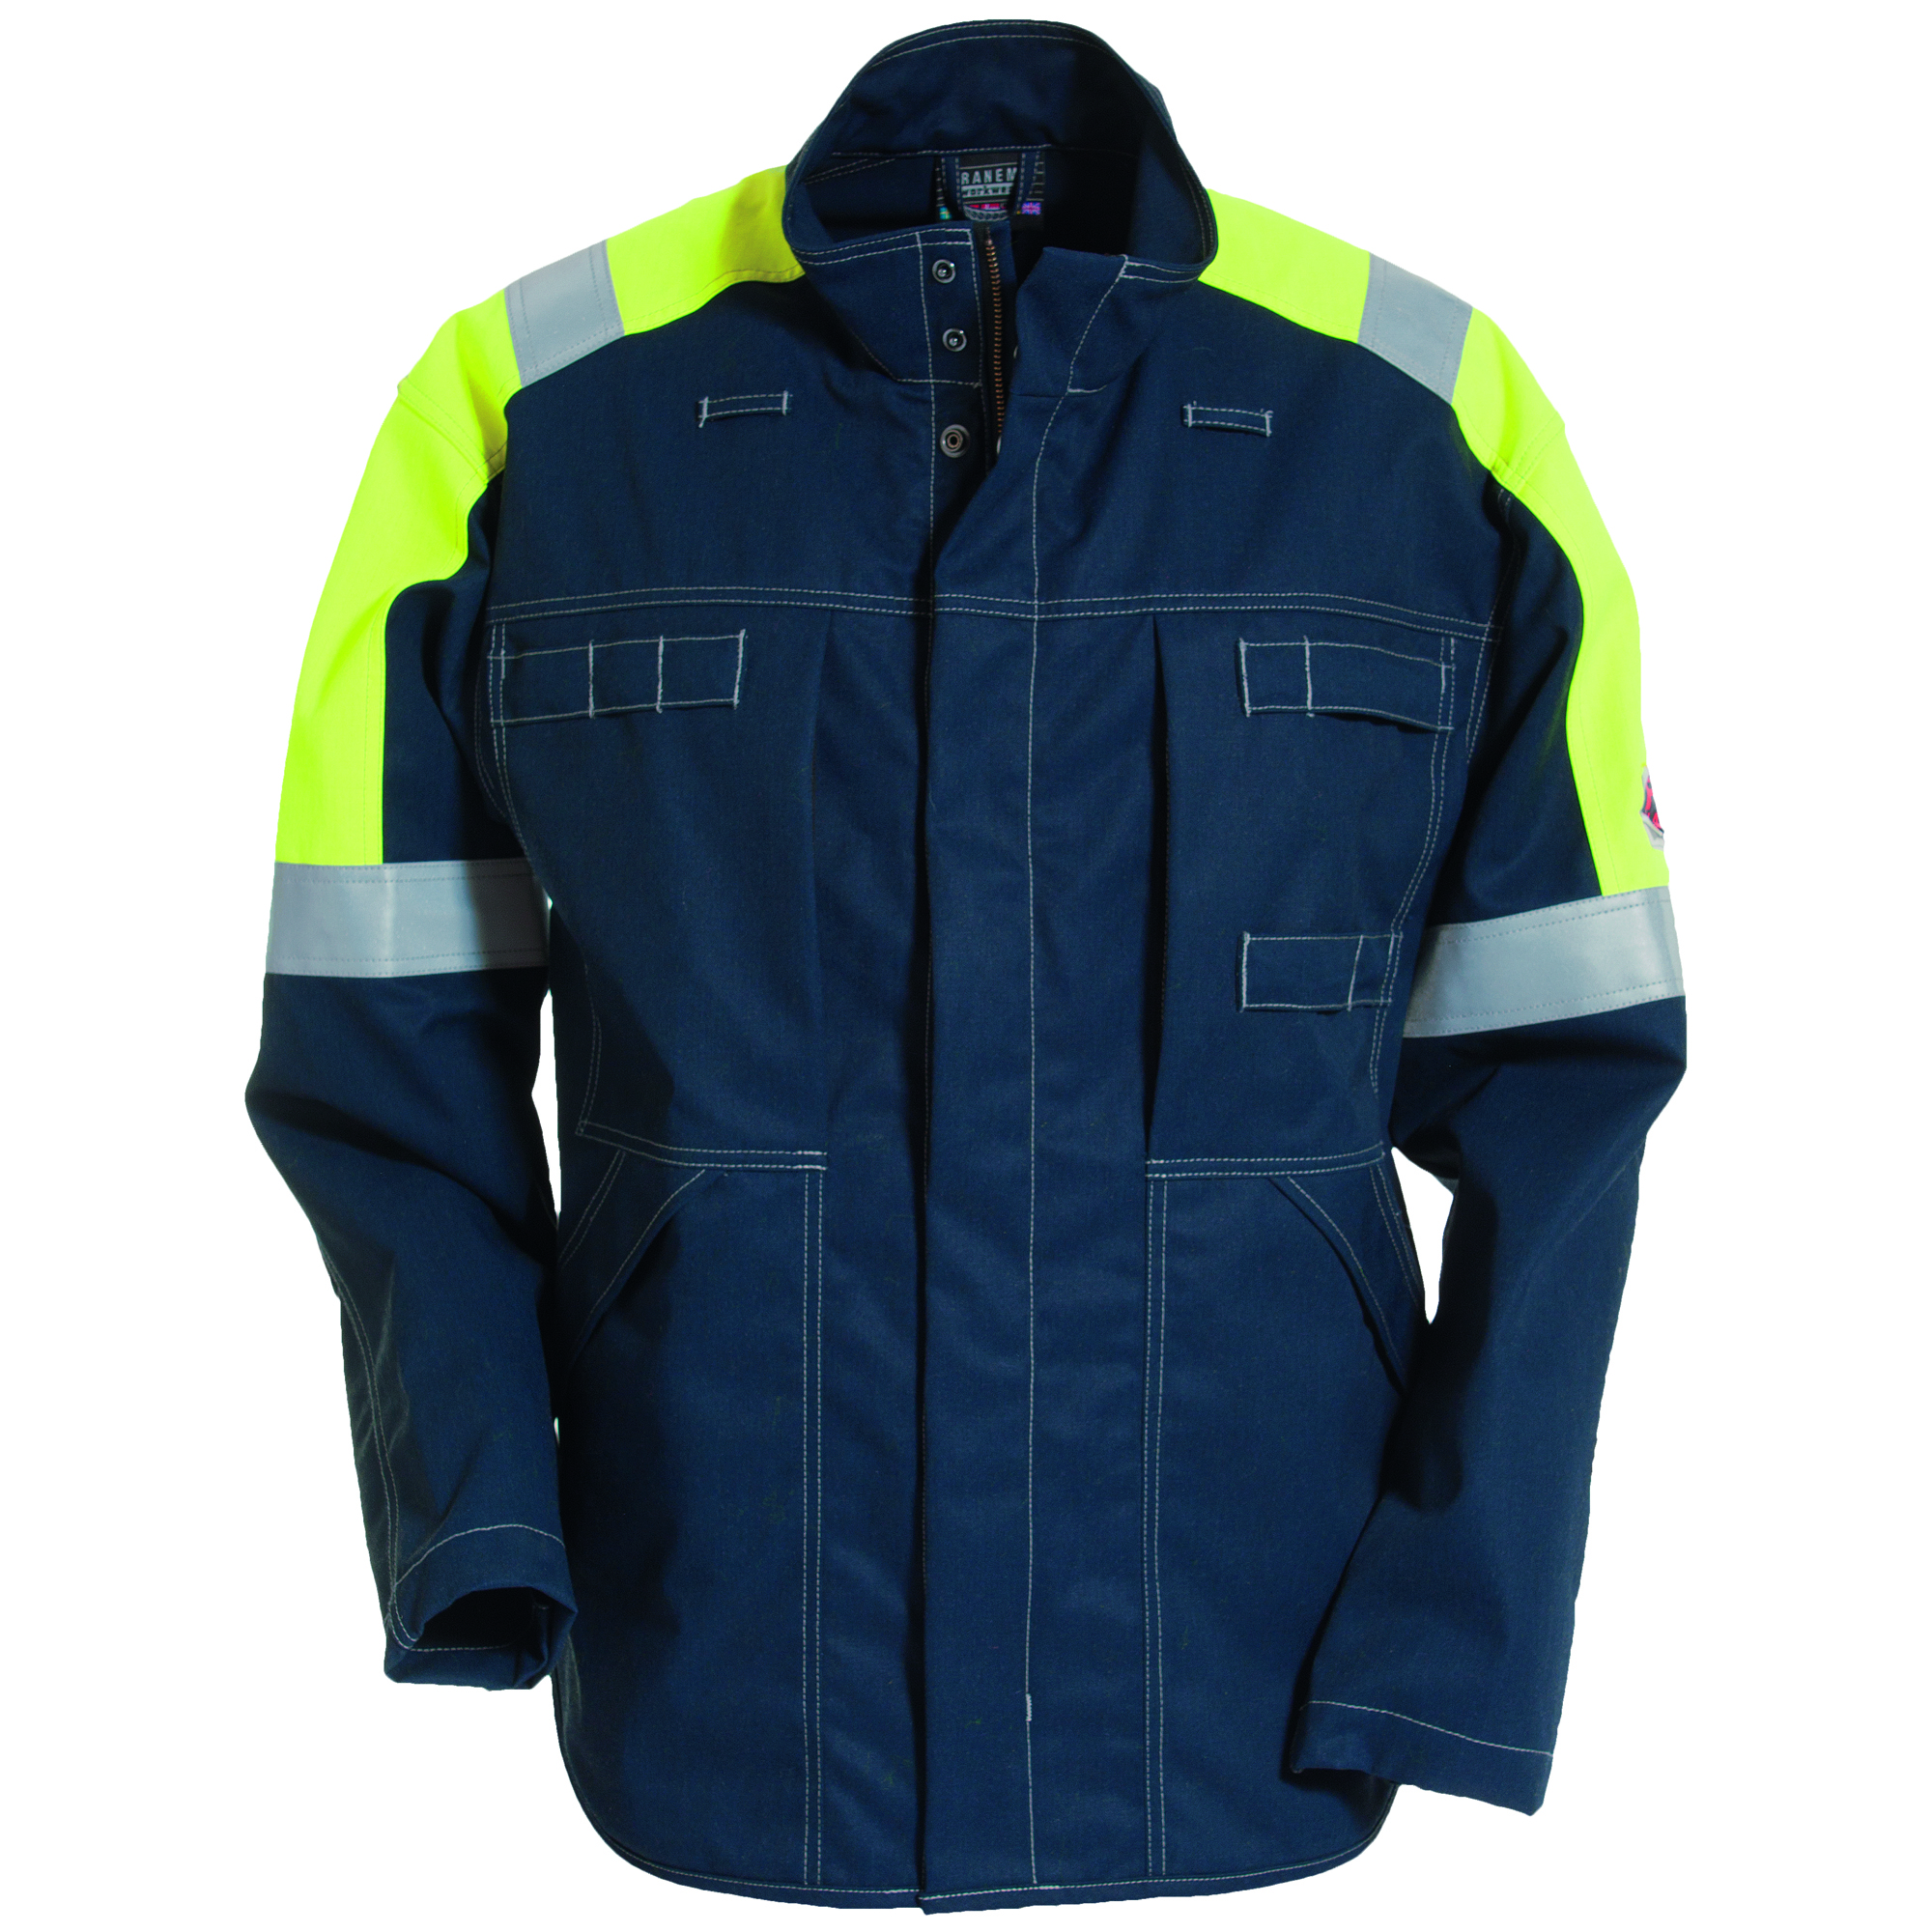 TRANEMO 5736 88 ARC FLASH JACKET - 11.9 CAL/CM2